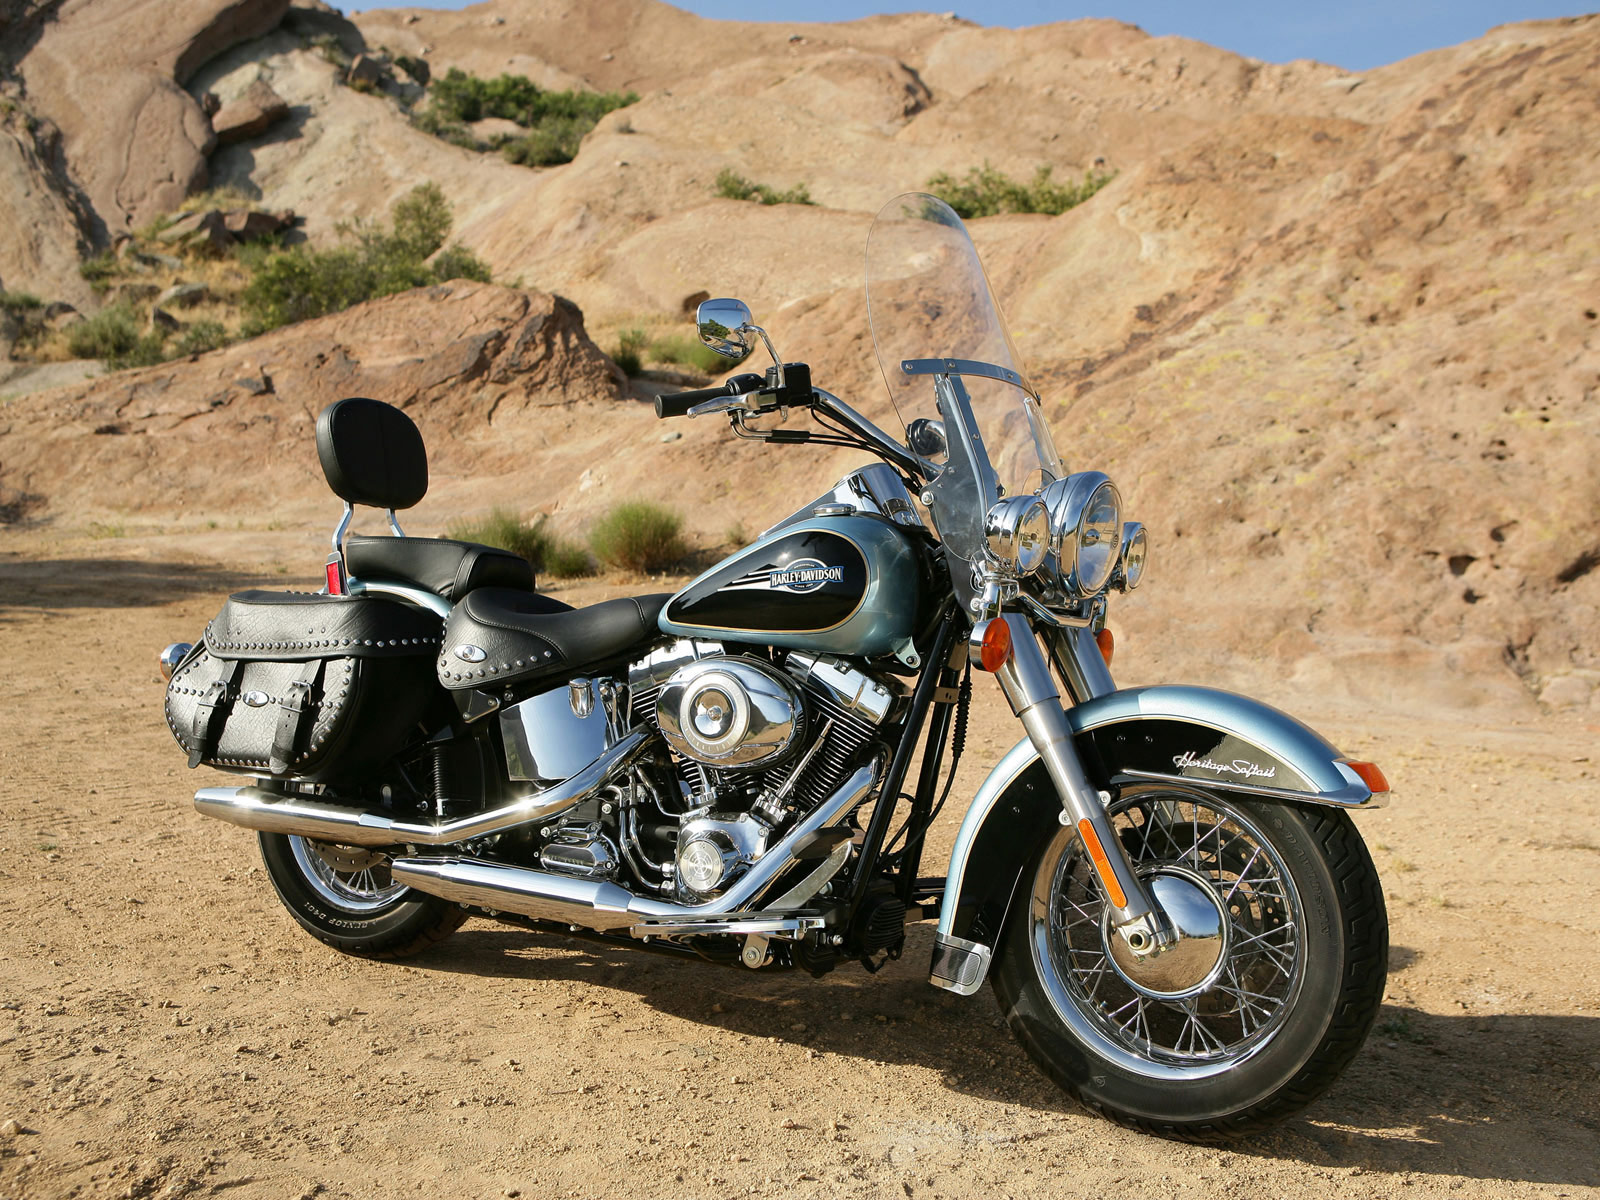 2012 Harley Davidson Flstc Heritage Softail Classic Top Speed